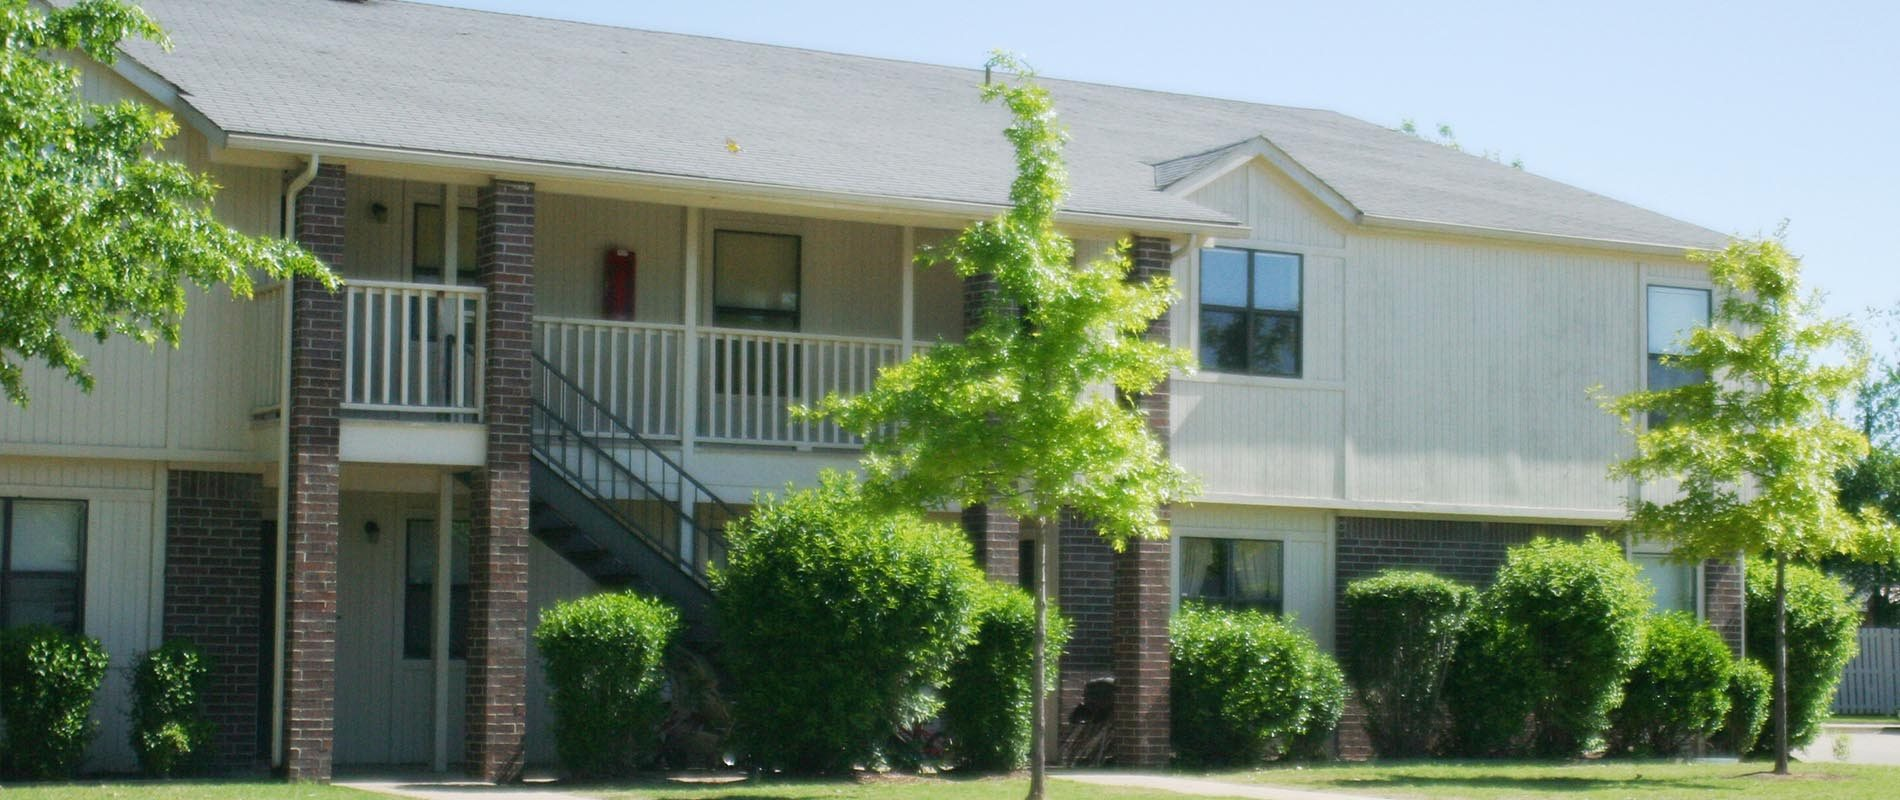 turtle creek personals The lakes at turtle creek apartment homes - the lakes at turtle creek apartment homes is hattiesburg's premiere luxury apartment community located.